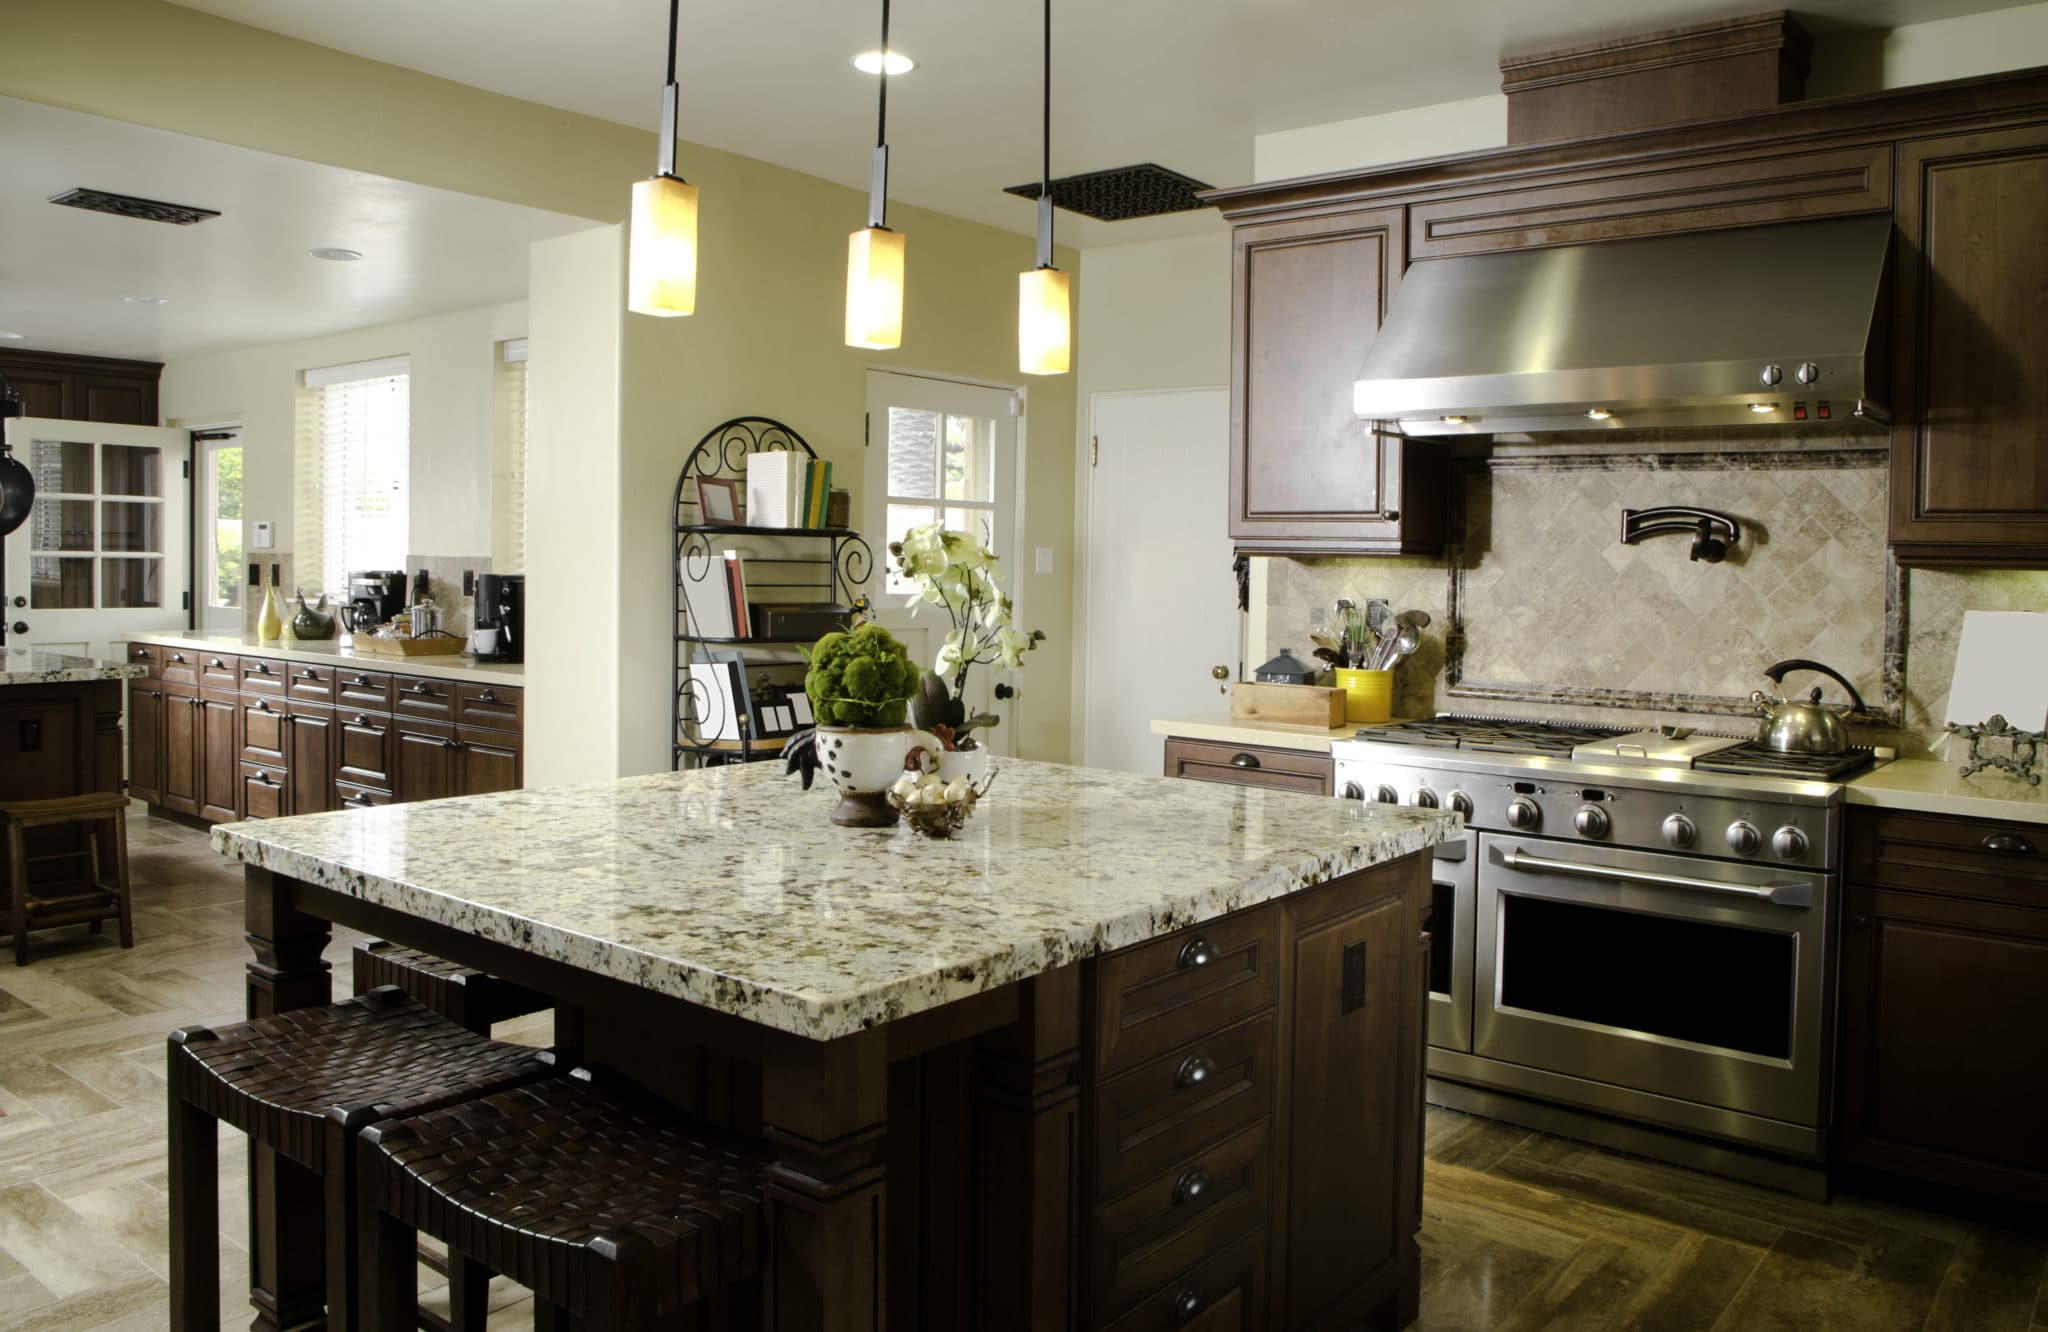 remodeling kitchen remodeling contractor Riverside County CA Kitchen Remodeling Contractor